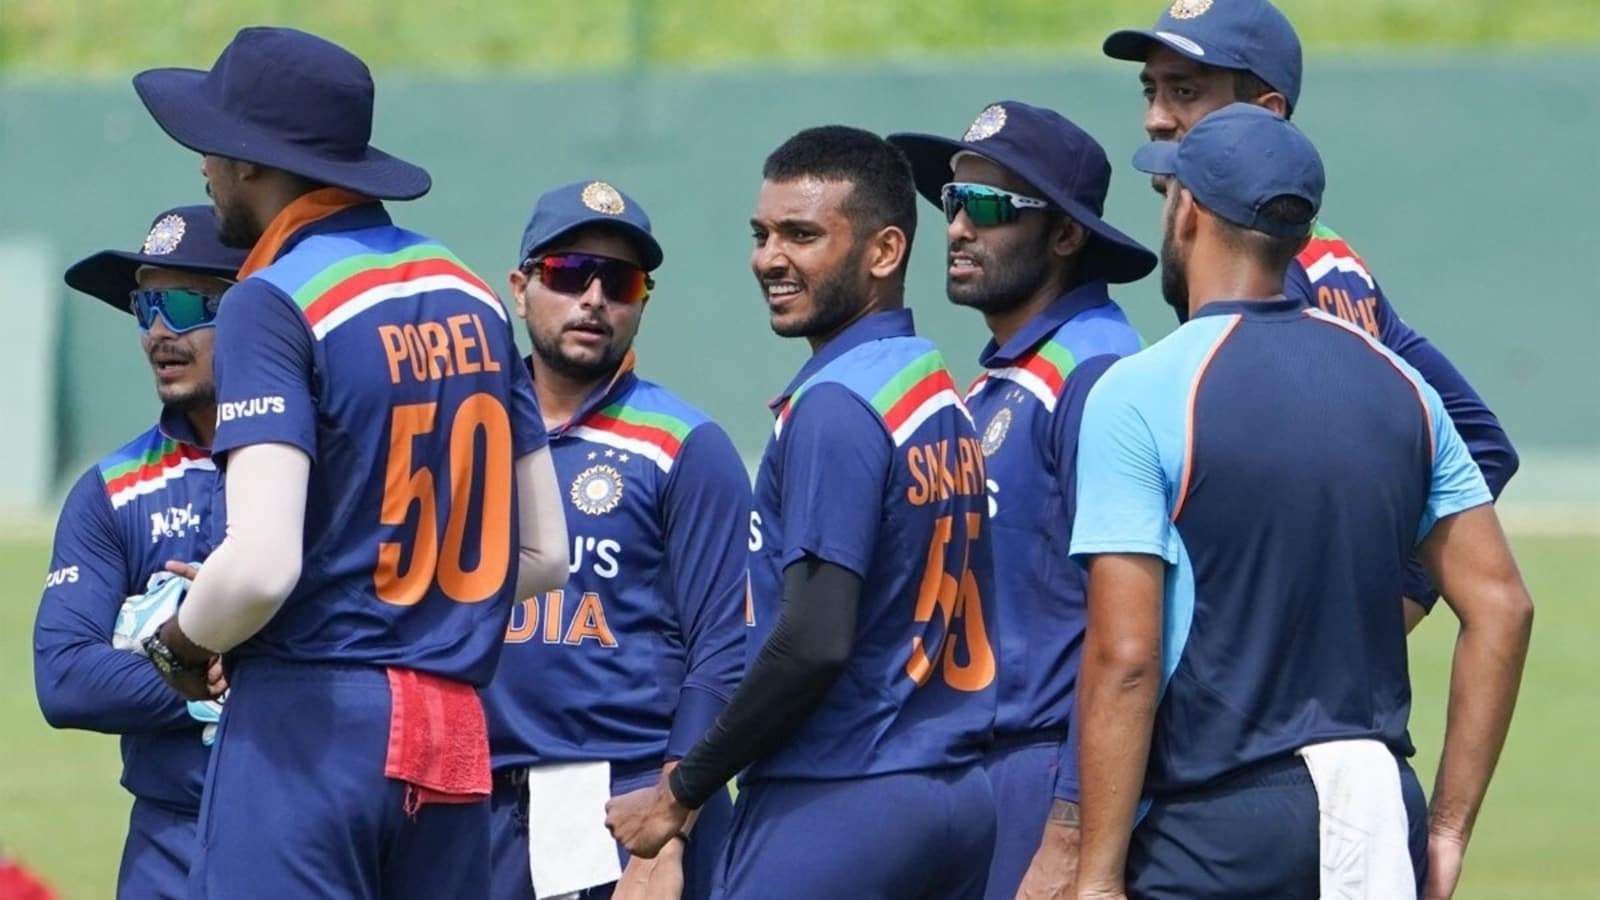 Saini dismisses Padikkal with a peach, SLC shares highlights of India's 2nd  intra-squad match simulation - Watch video   Cricket - Hindustan Times